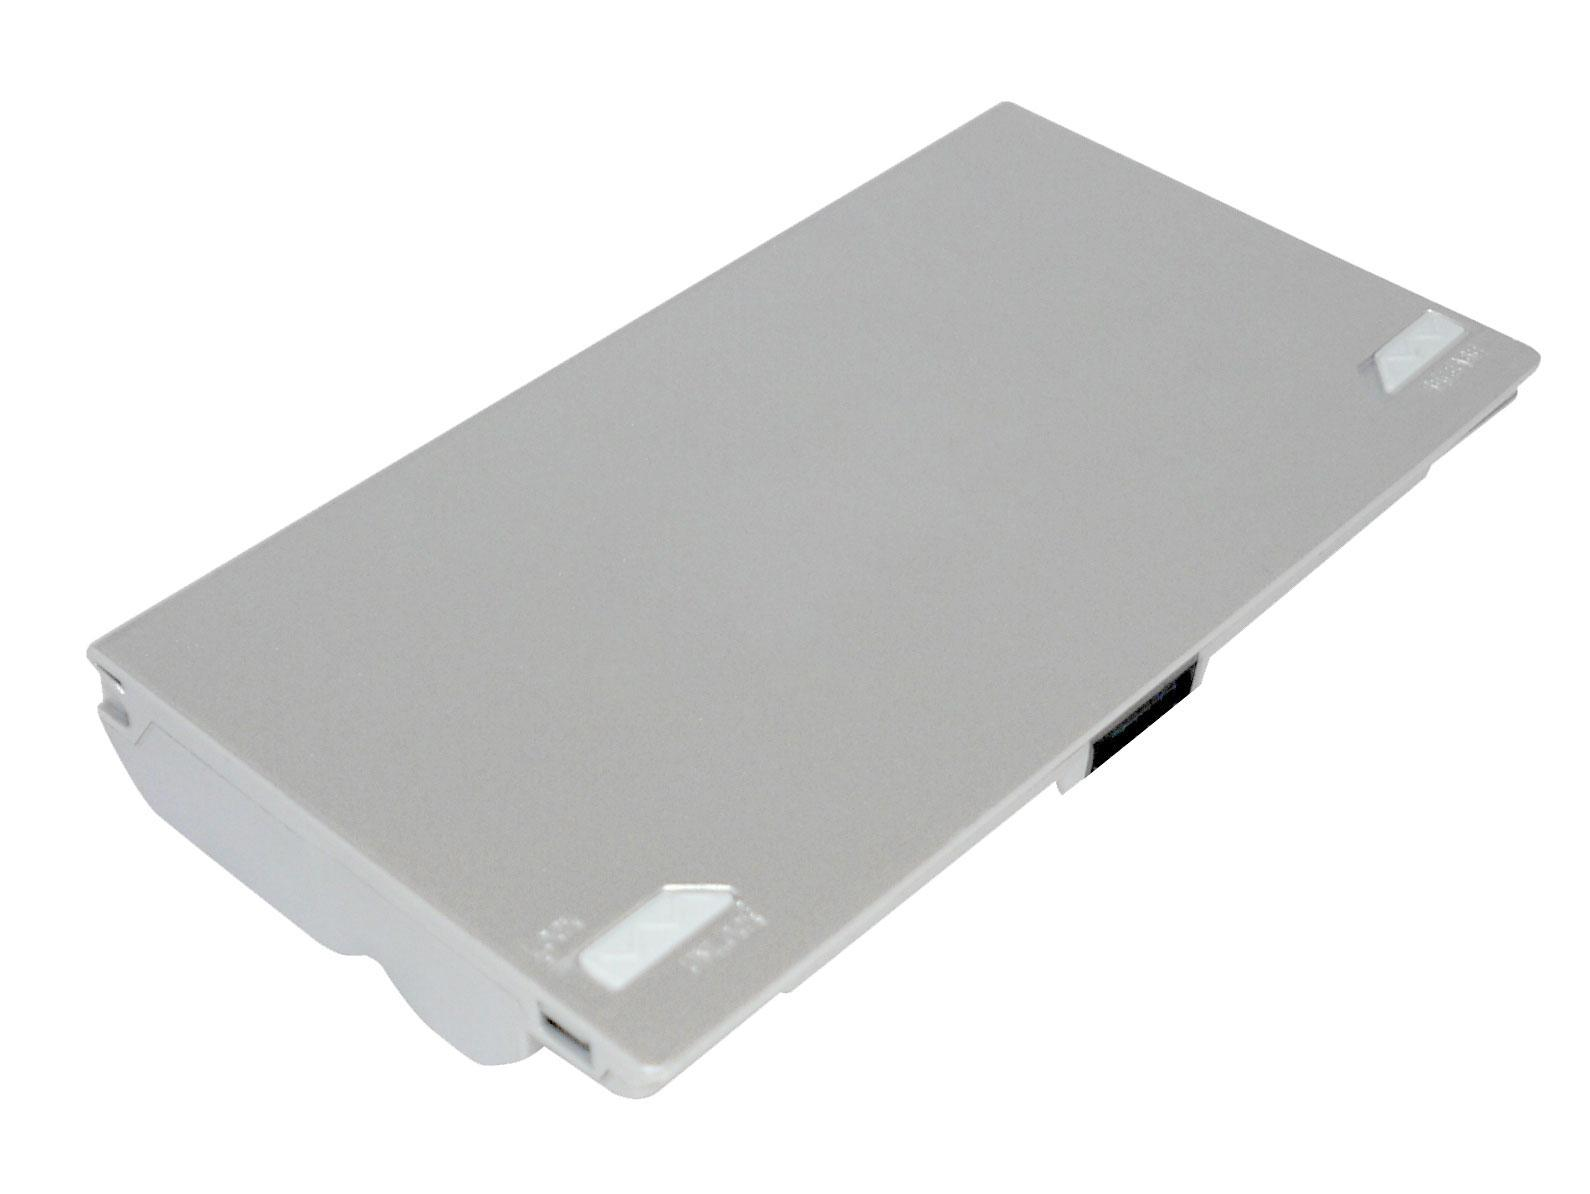 Replacement Sony VAIO VGN-FZ18 Battery